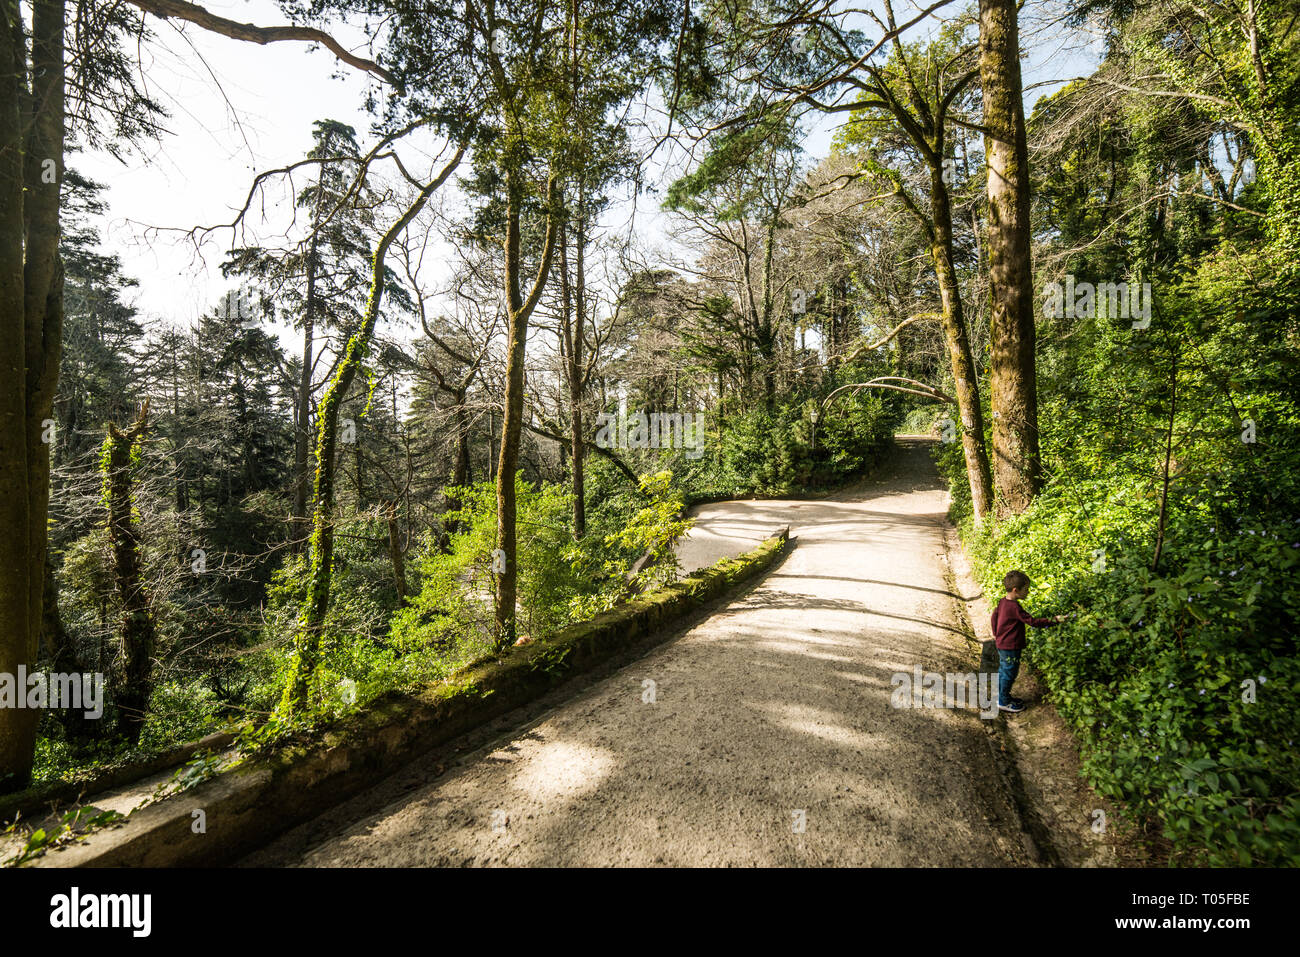 Sintra castle and park, Lisboa, February 2019 - Stock Image